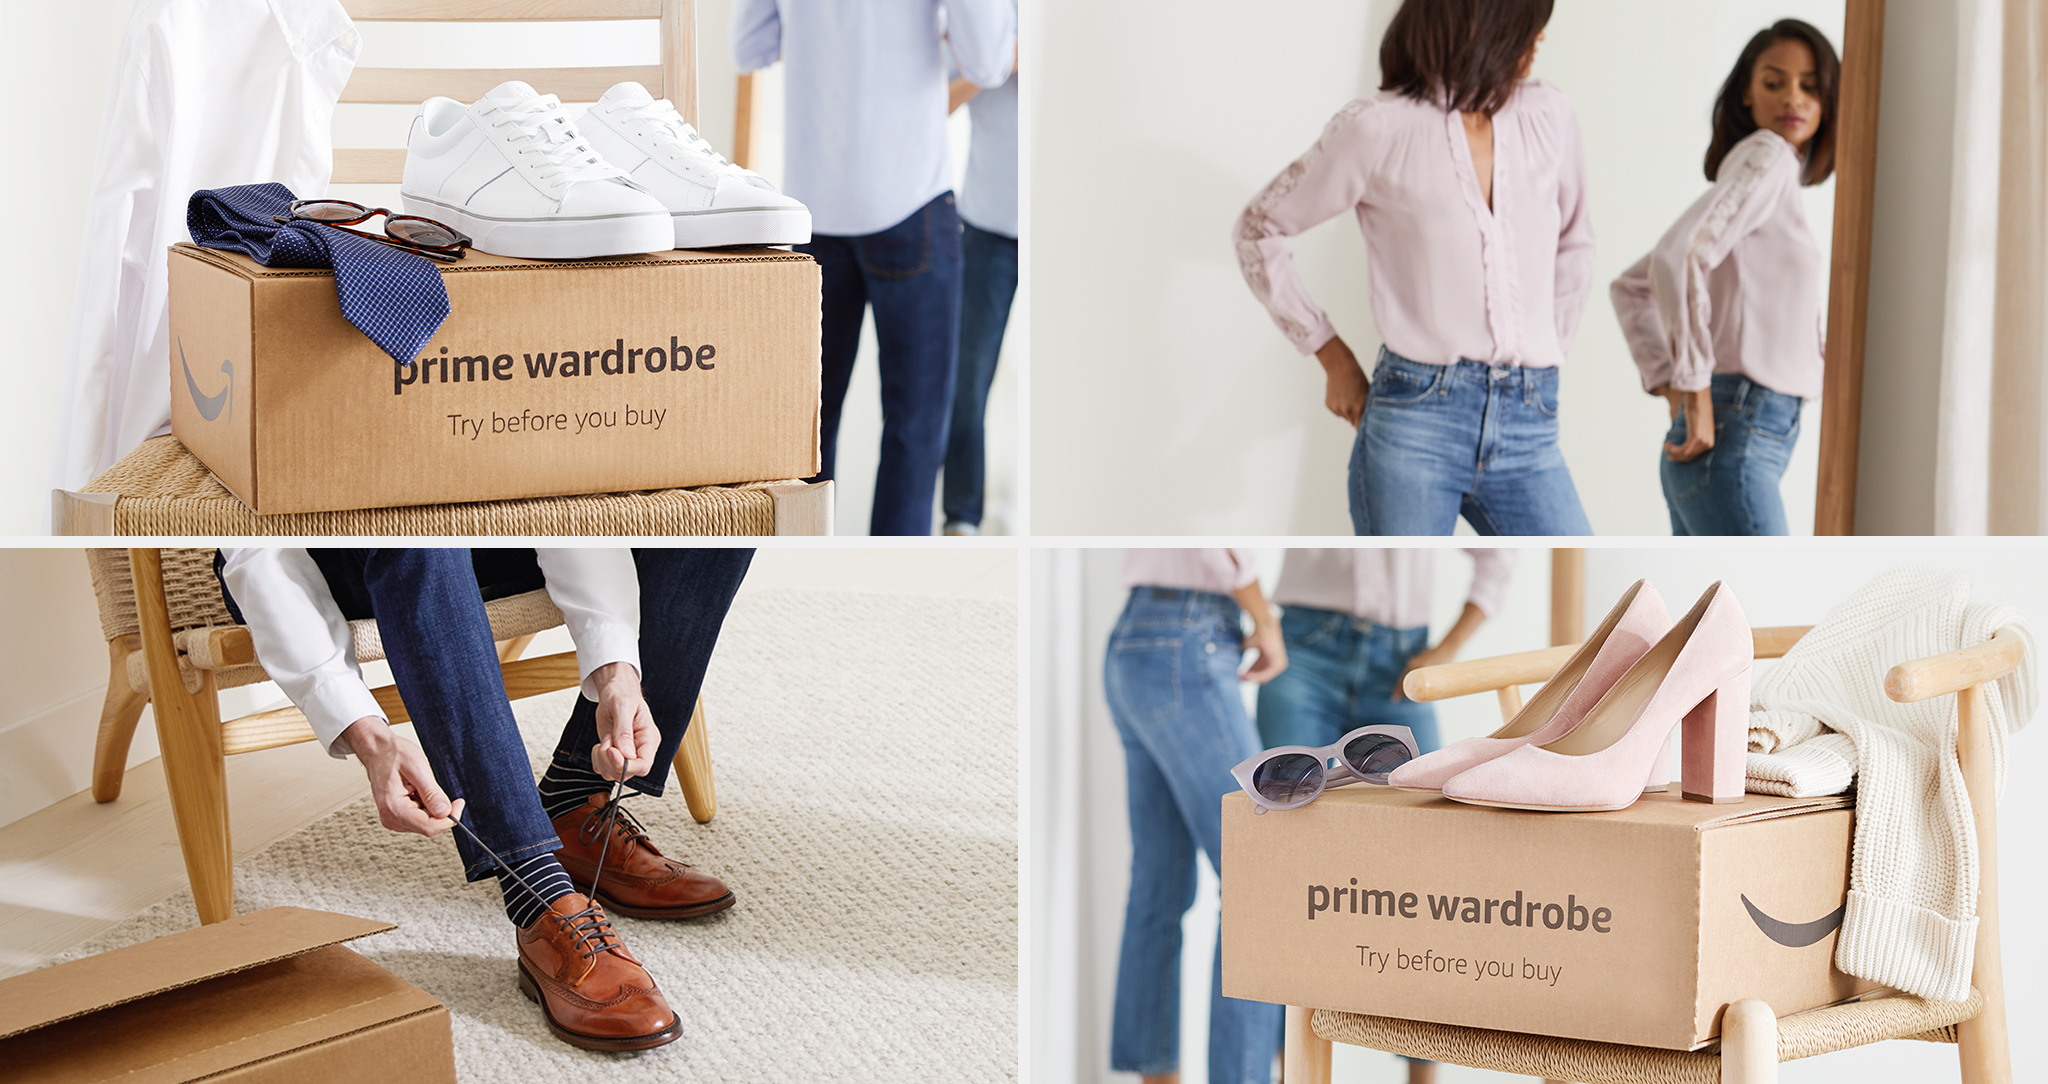 Introducing Prime Wardrobe